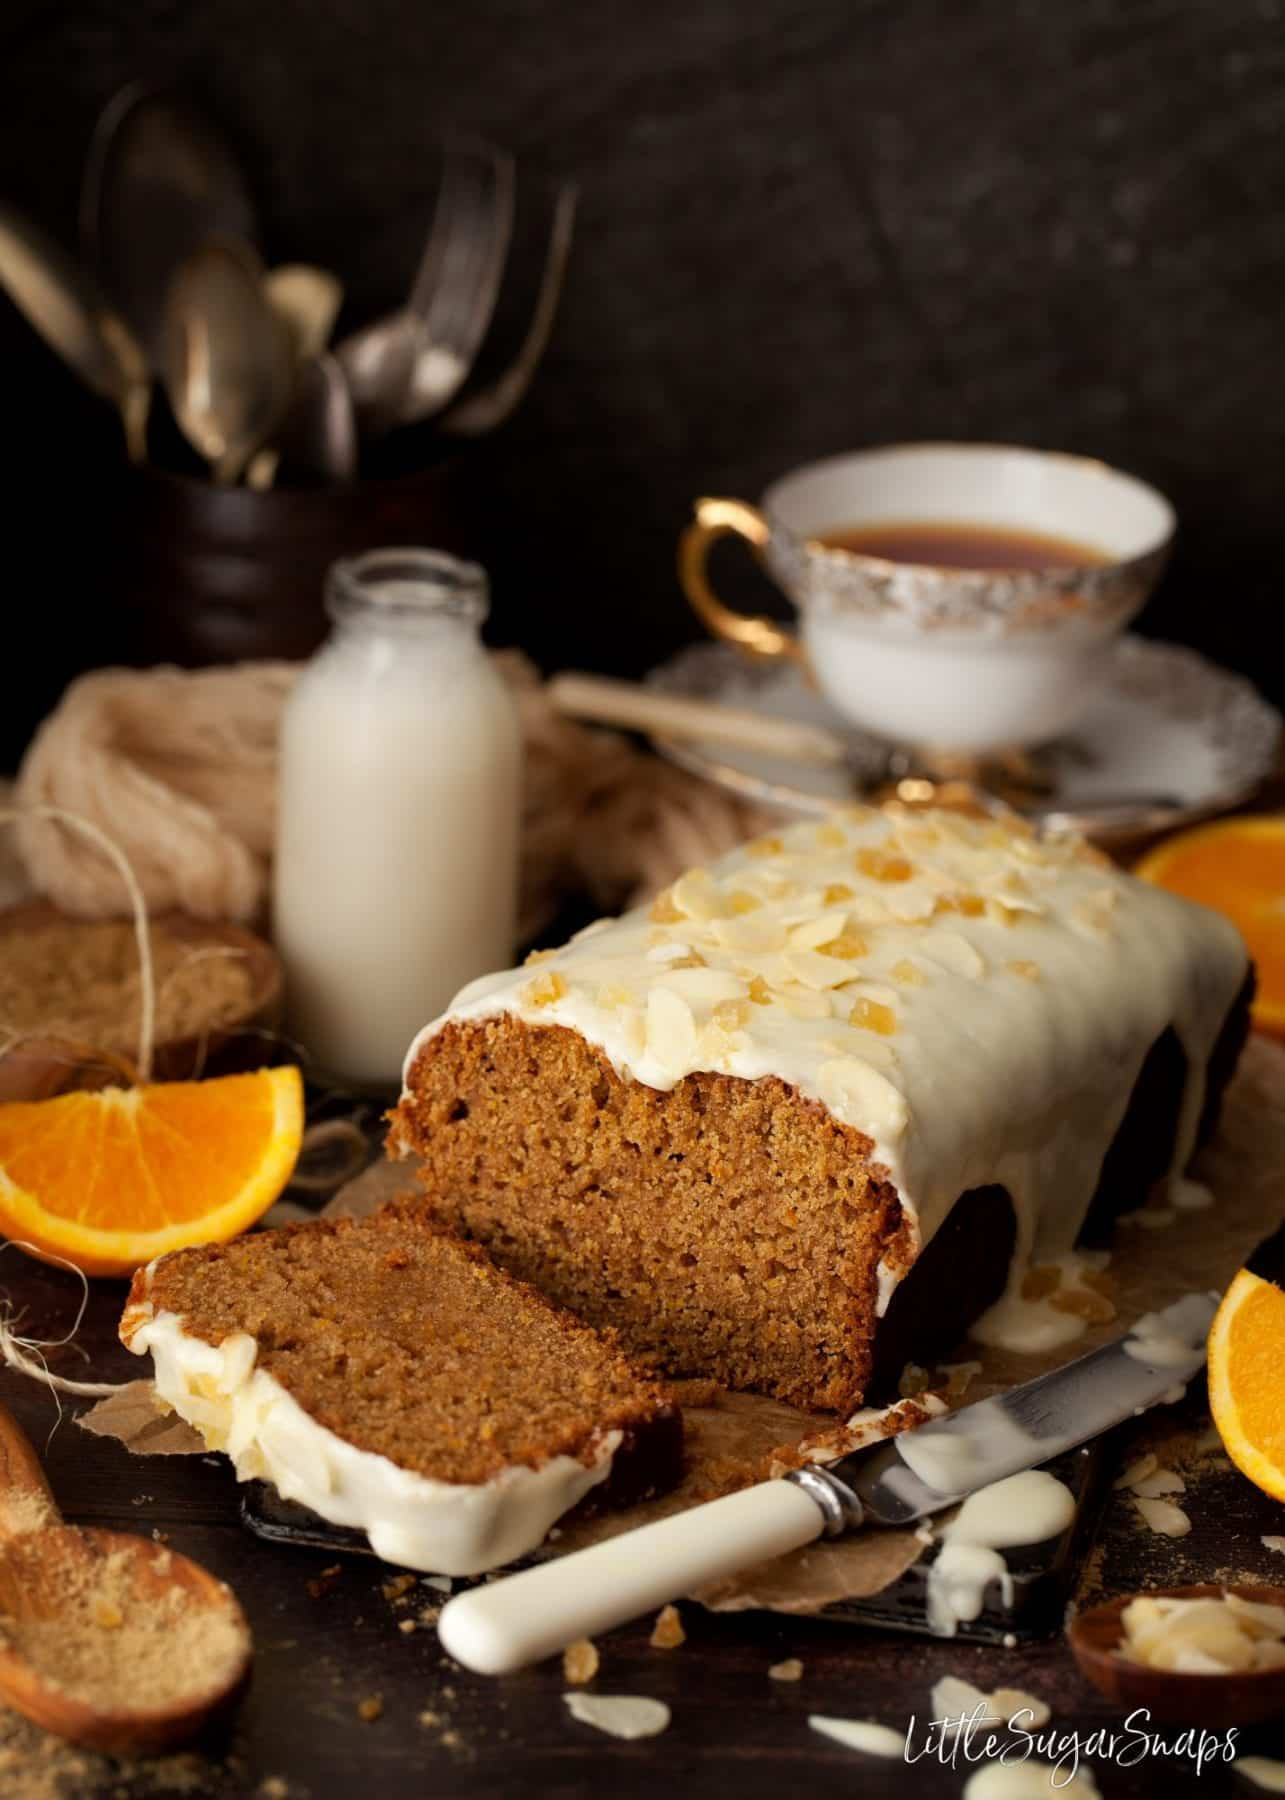 Freshly cut sweet loaf cake served with tea